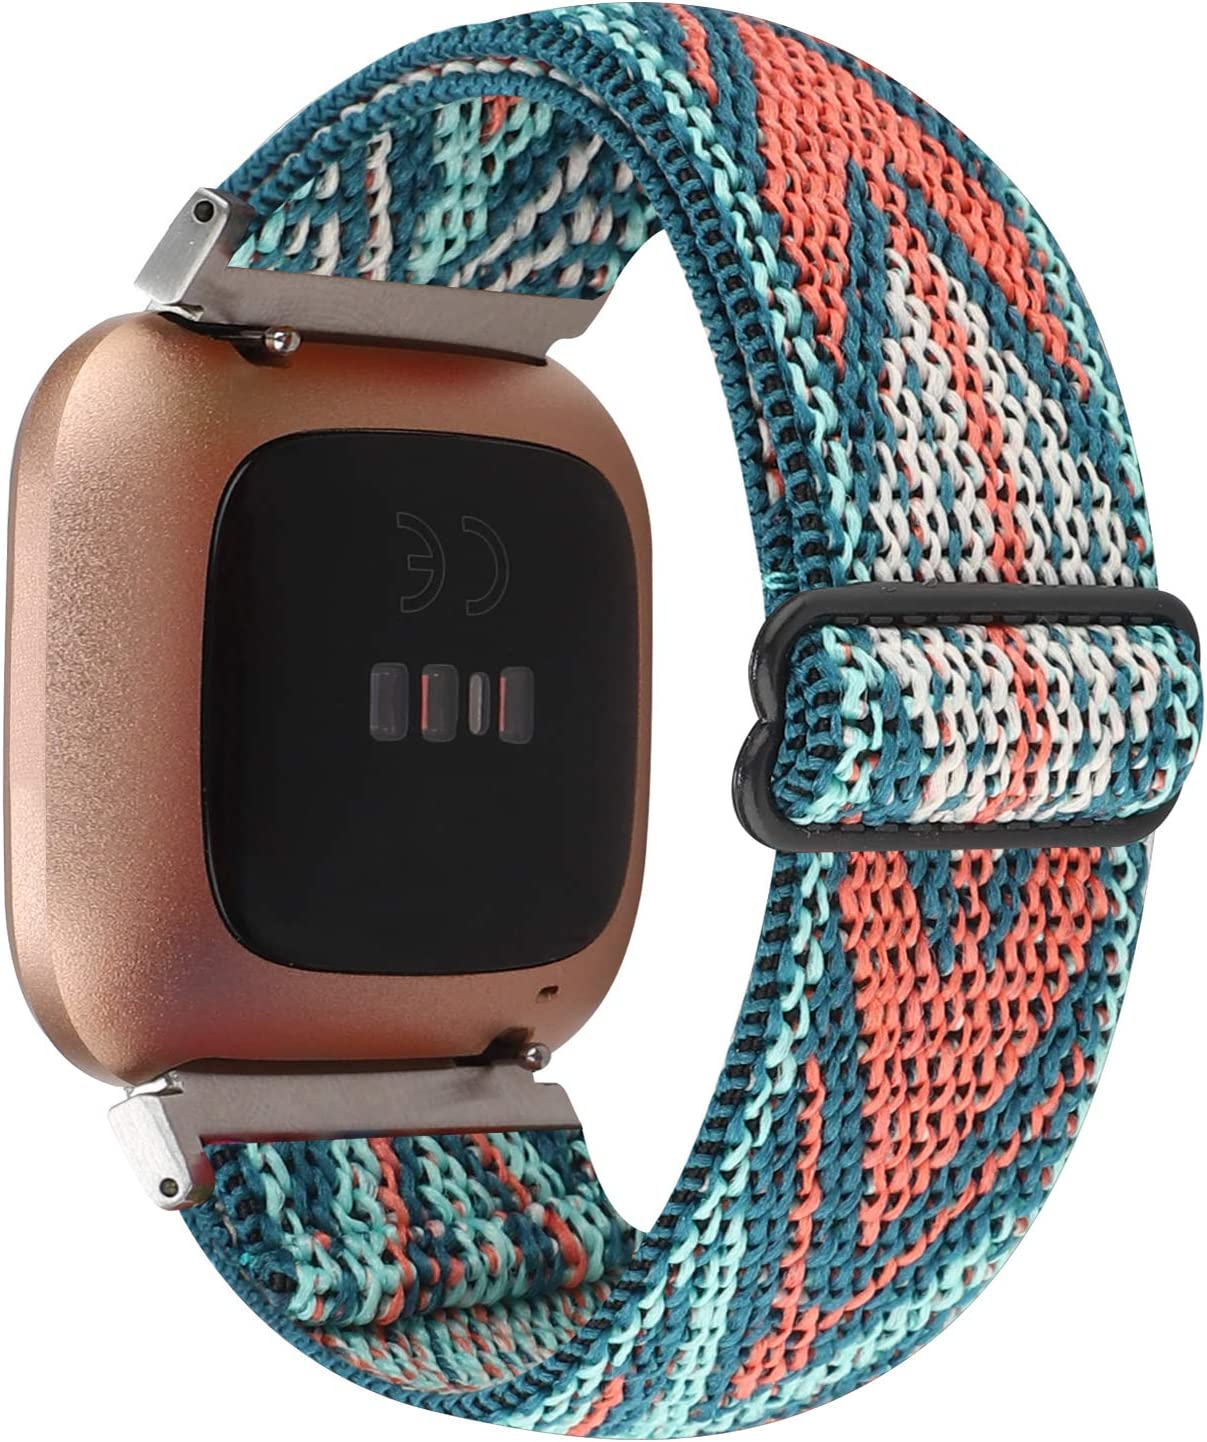 Adjustable Elastic Watch Band Compatible with Fitbit Versa/Versa 2/Versa Lite Special Edition for Women Men Nylon Stretchy Strap Wristband for Fitbit Versa Smart Watch (Green Arrow) : Sports & Outdoors